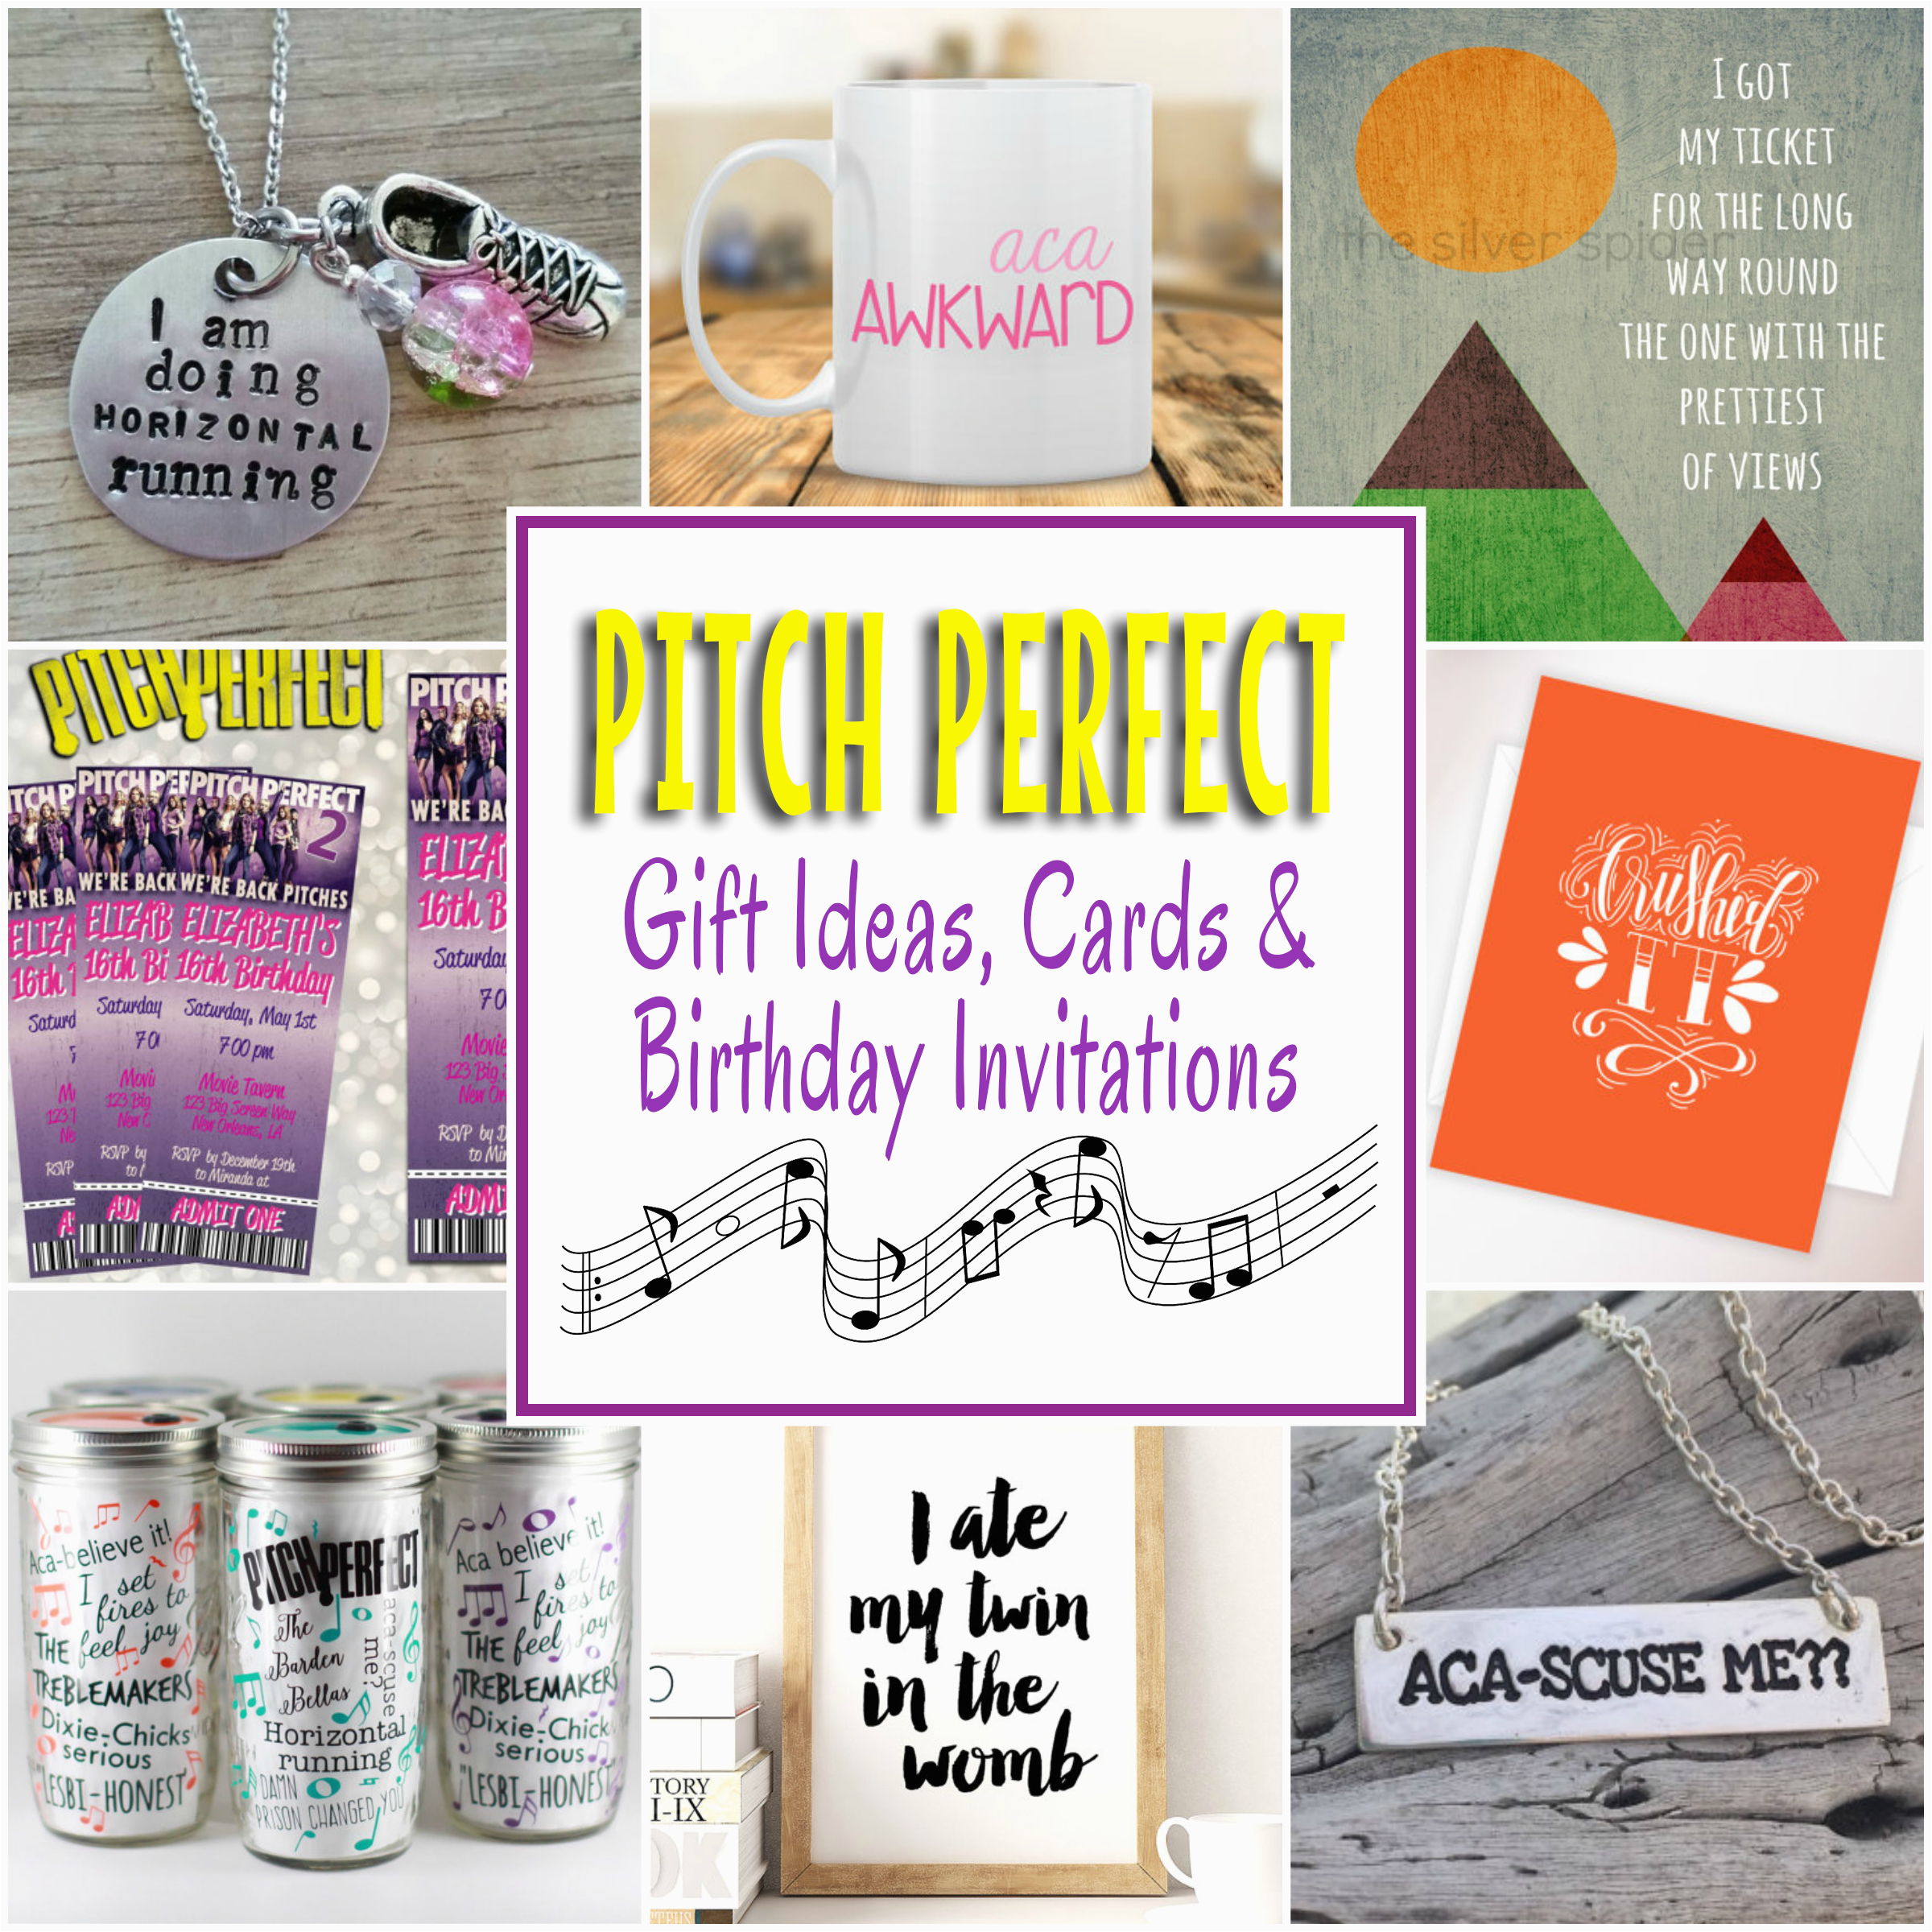 Perfect Birthday Present for Him Pitch Perfect Gifts Cards and Birthday Party Invitations